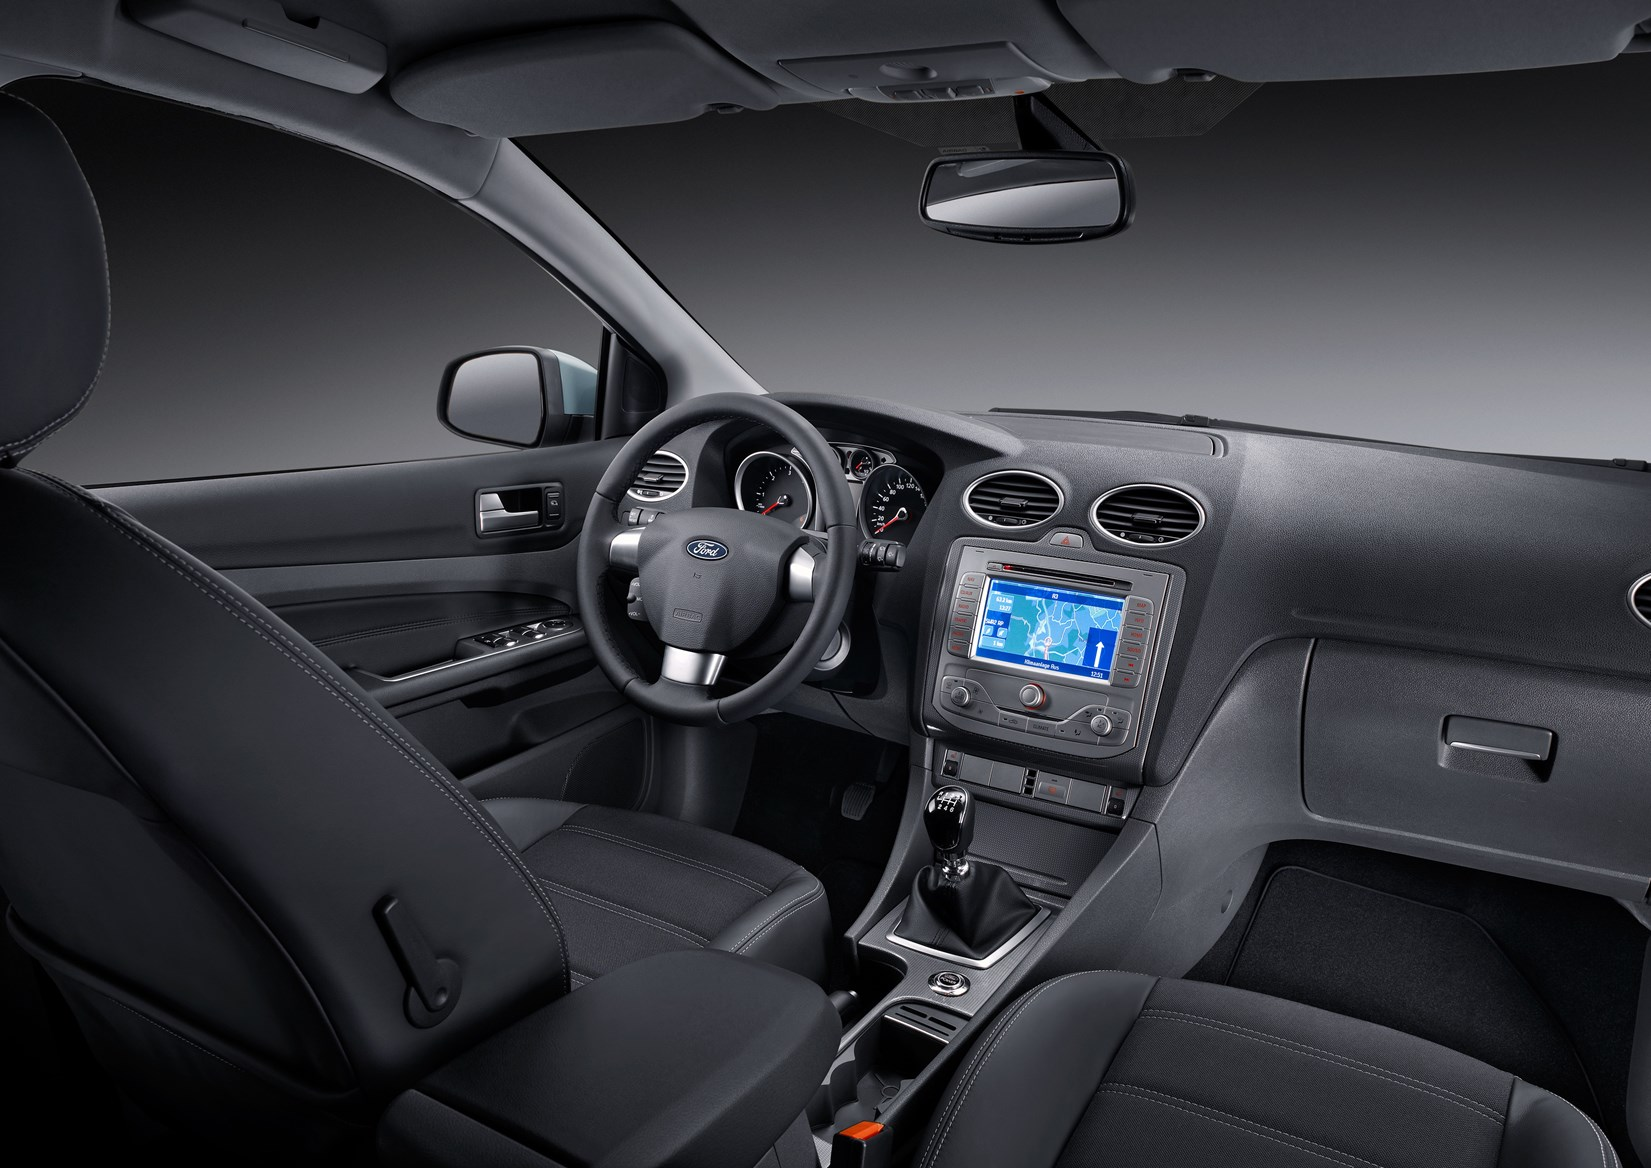 Ford Focus 2009 Interior Images Galleries With A Bite